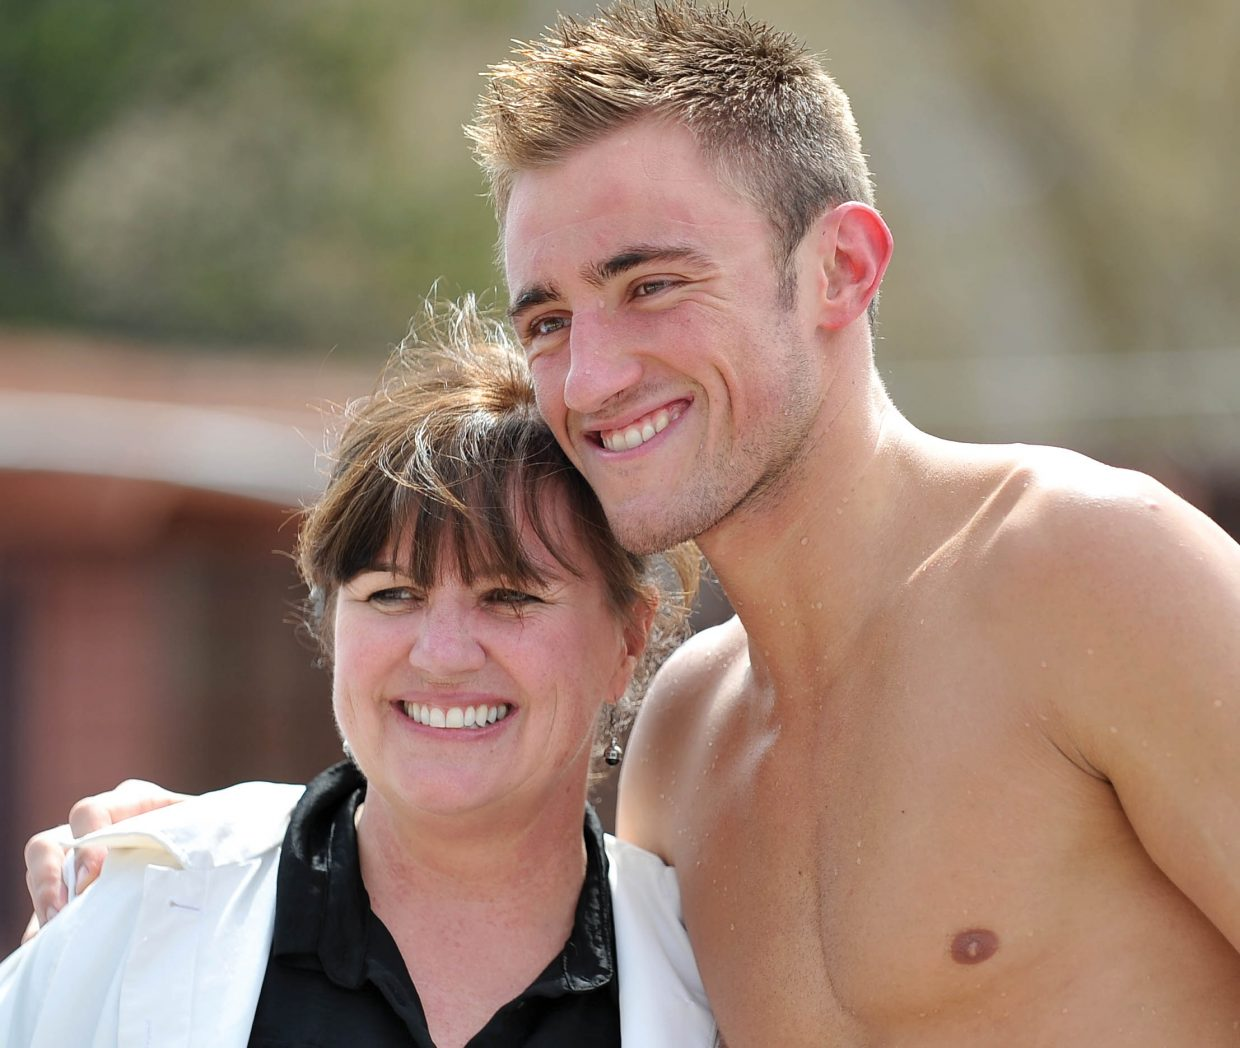 Swimmer Blake Worsley and his mom, Patti, pose for a photo at the Old Town Hot Springs pool Wednesday. Blake Worsley, who grew up in Steamboat Springs competing and training in the outdoor pool, will be representing Canada at this summer's Olympic Games in London.